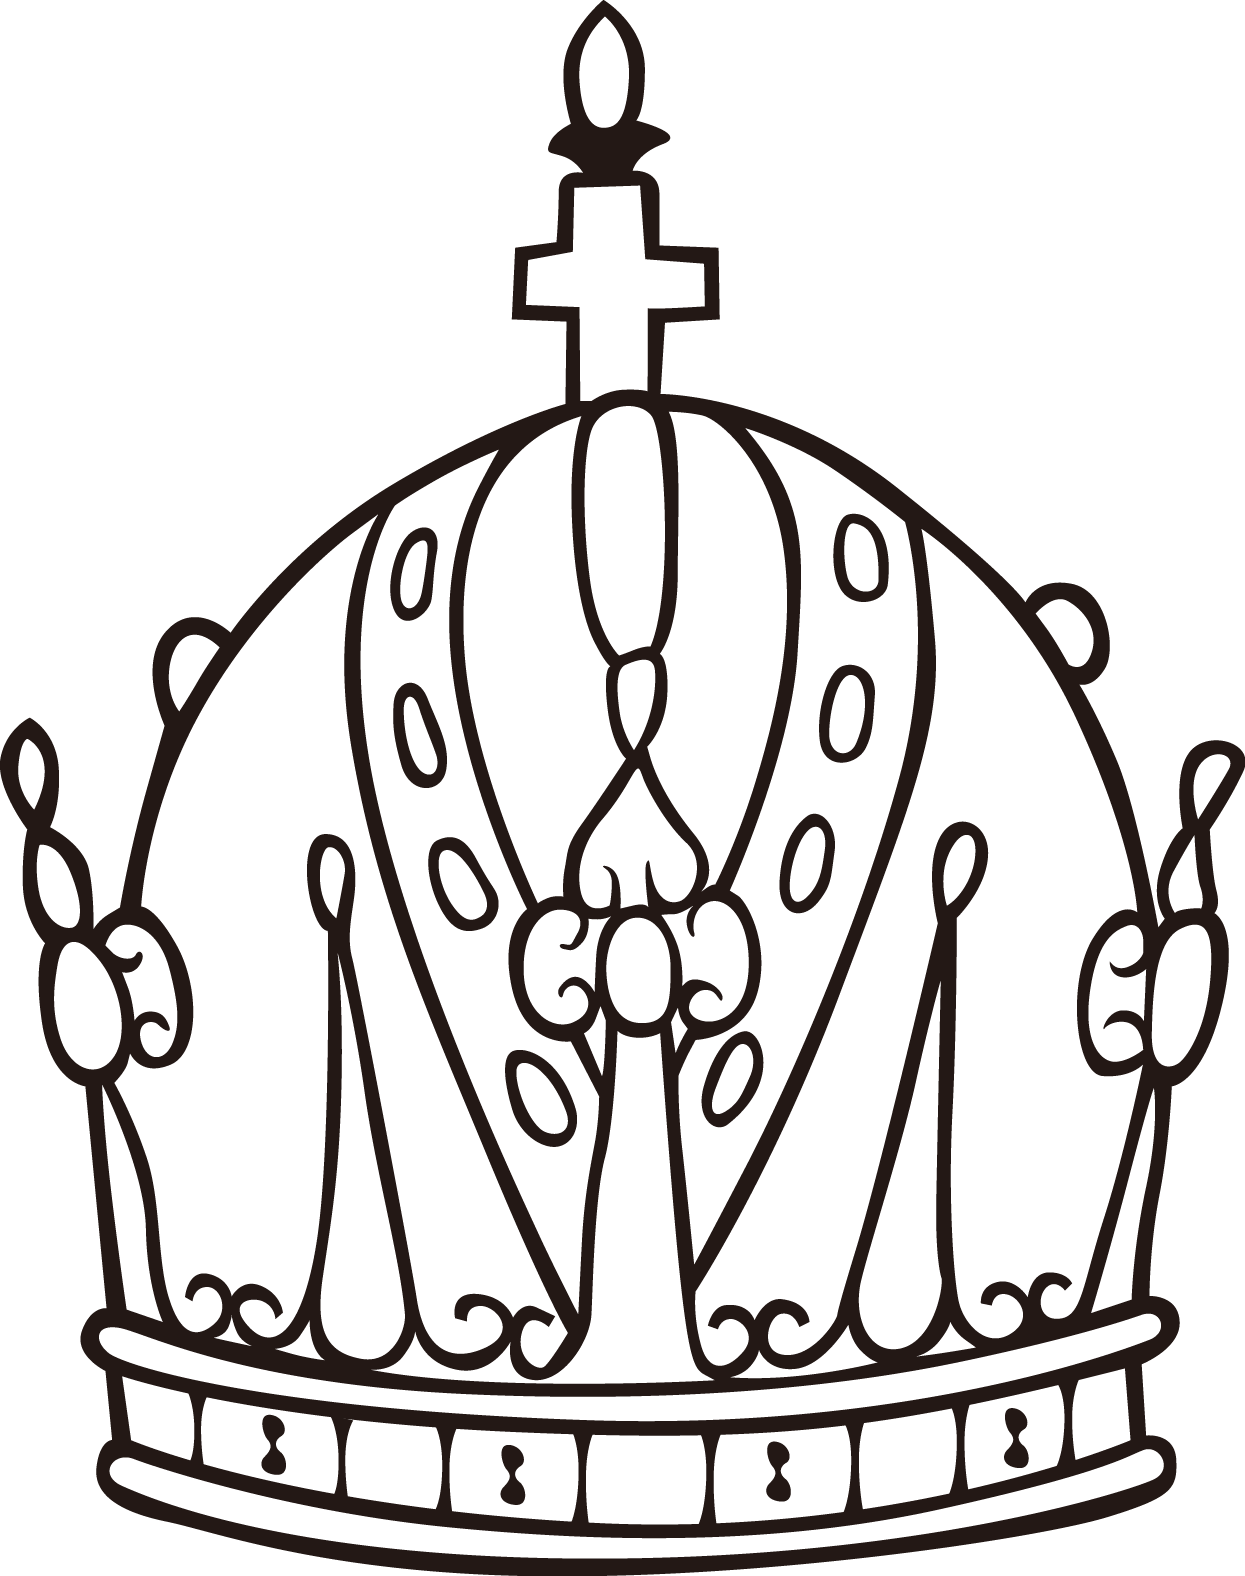 Hats drawing crown. Stock photography royalty free